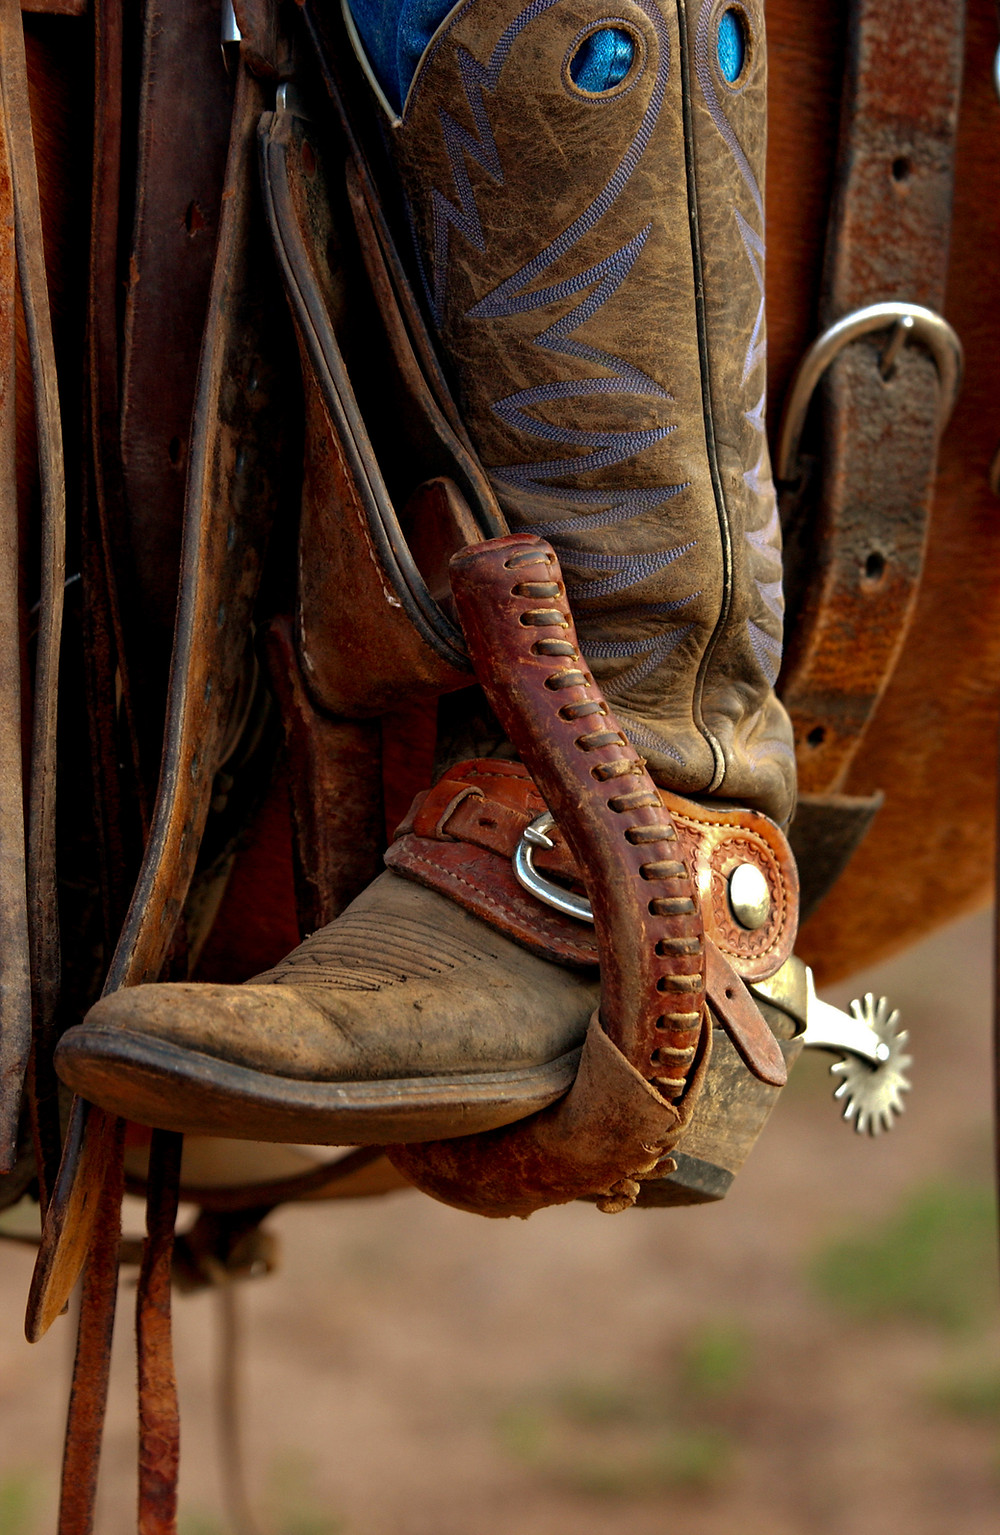 cowboy boot in stirrups